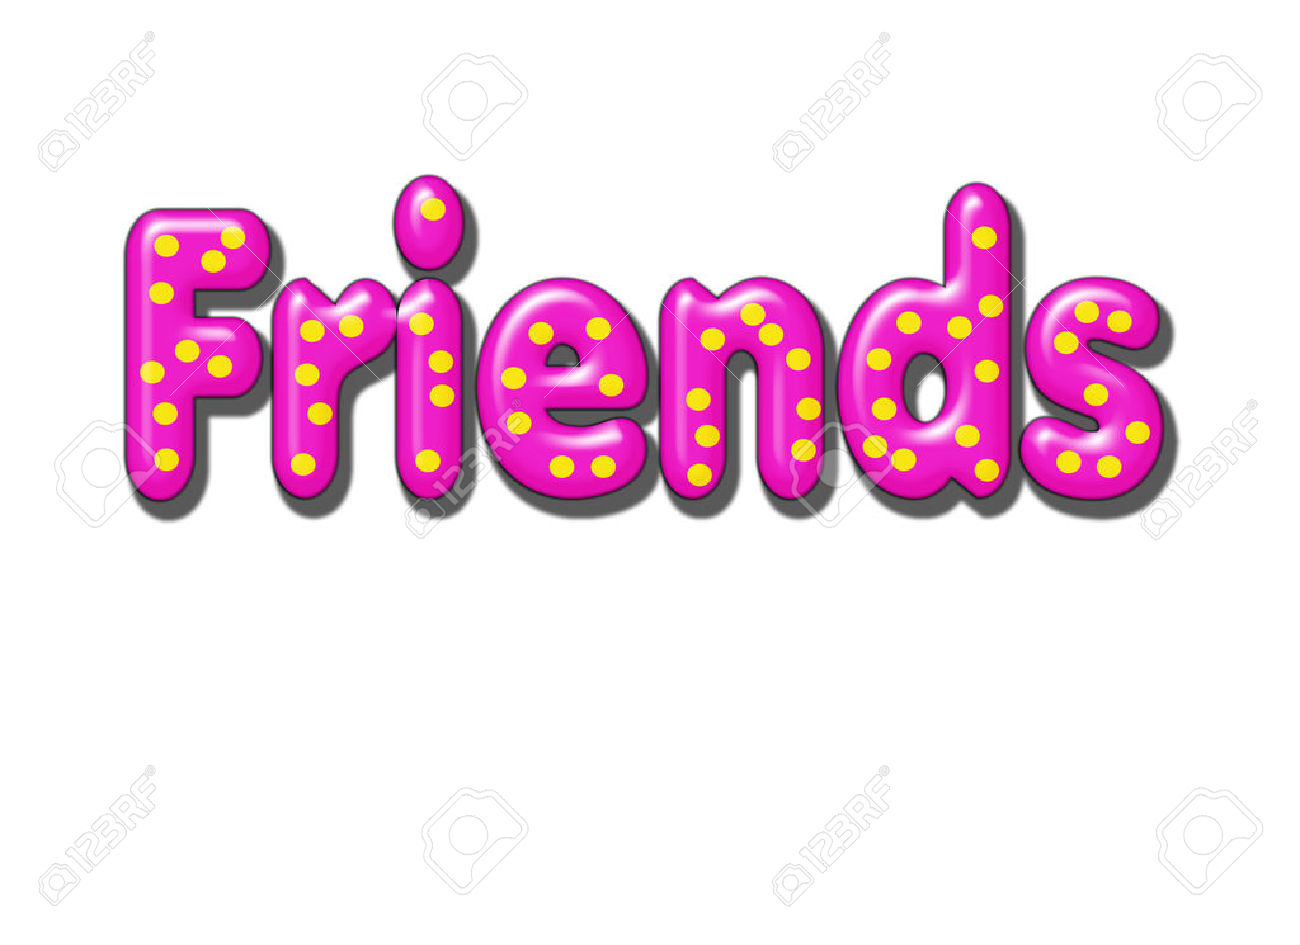 Clipart Transparent Background On Word.